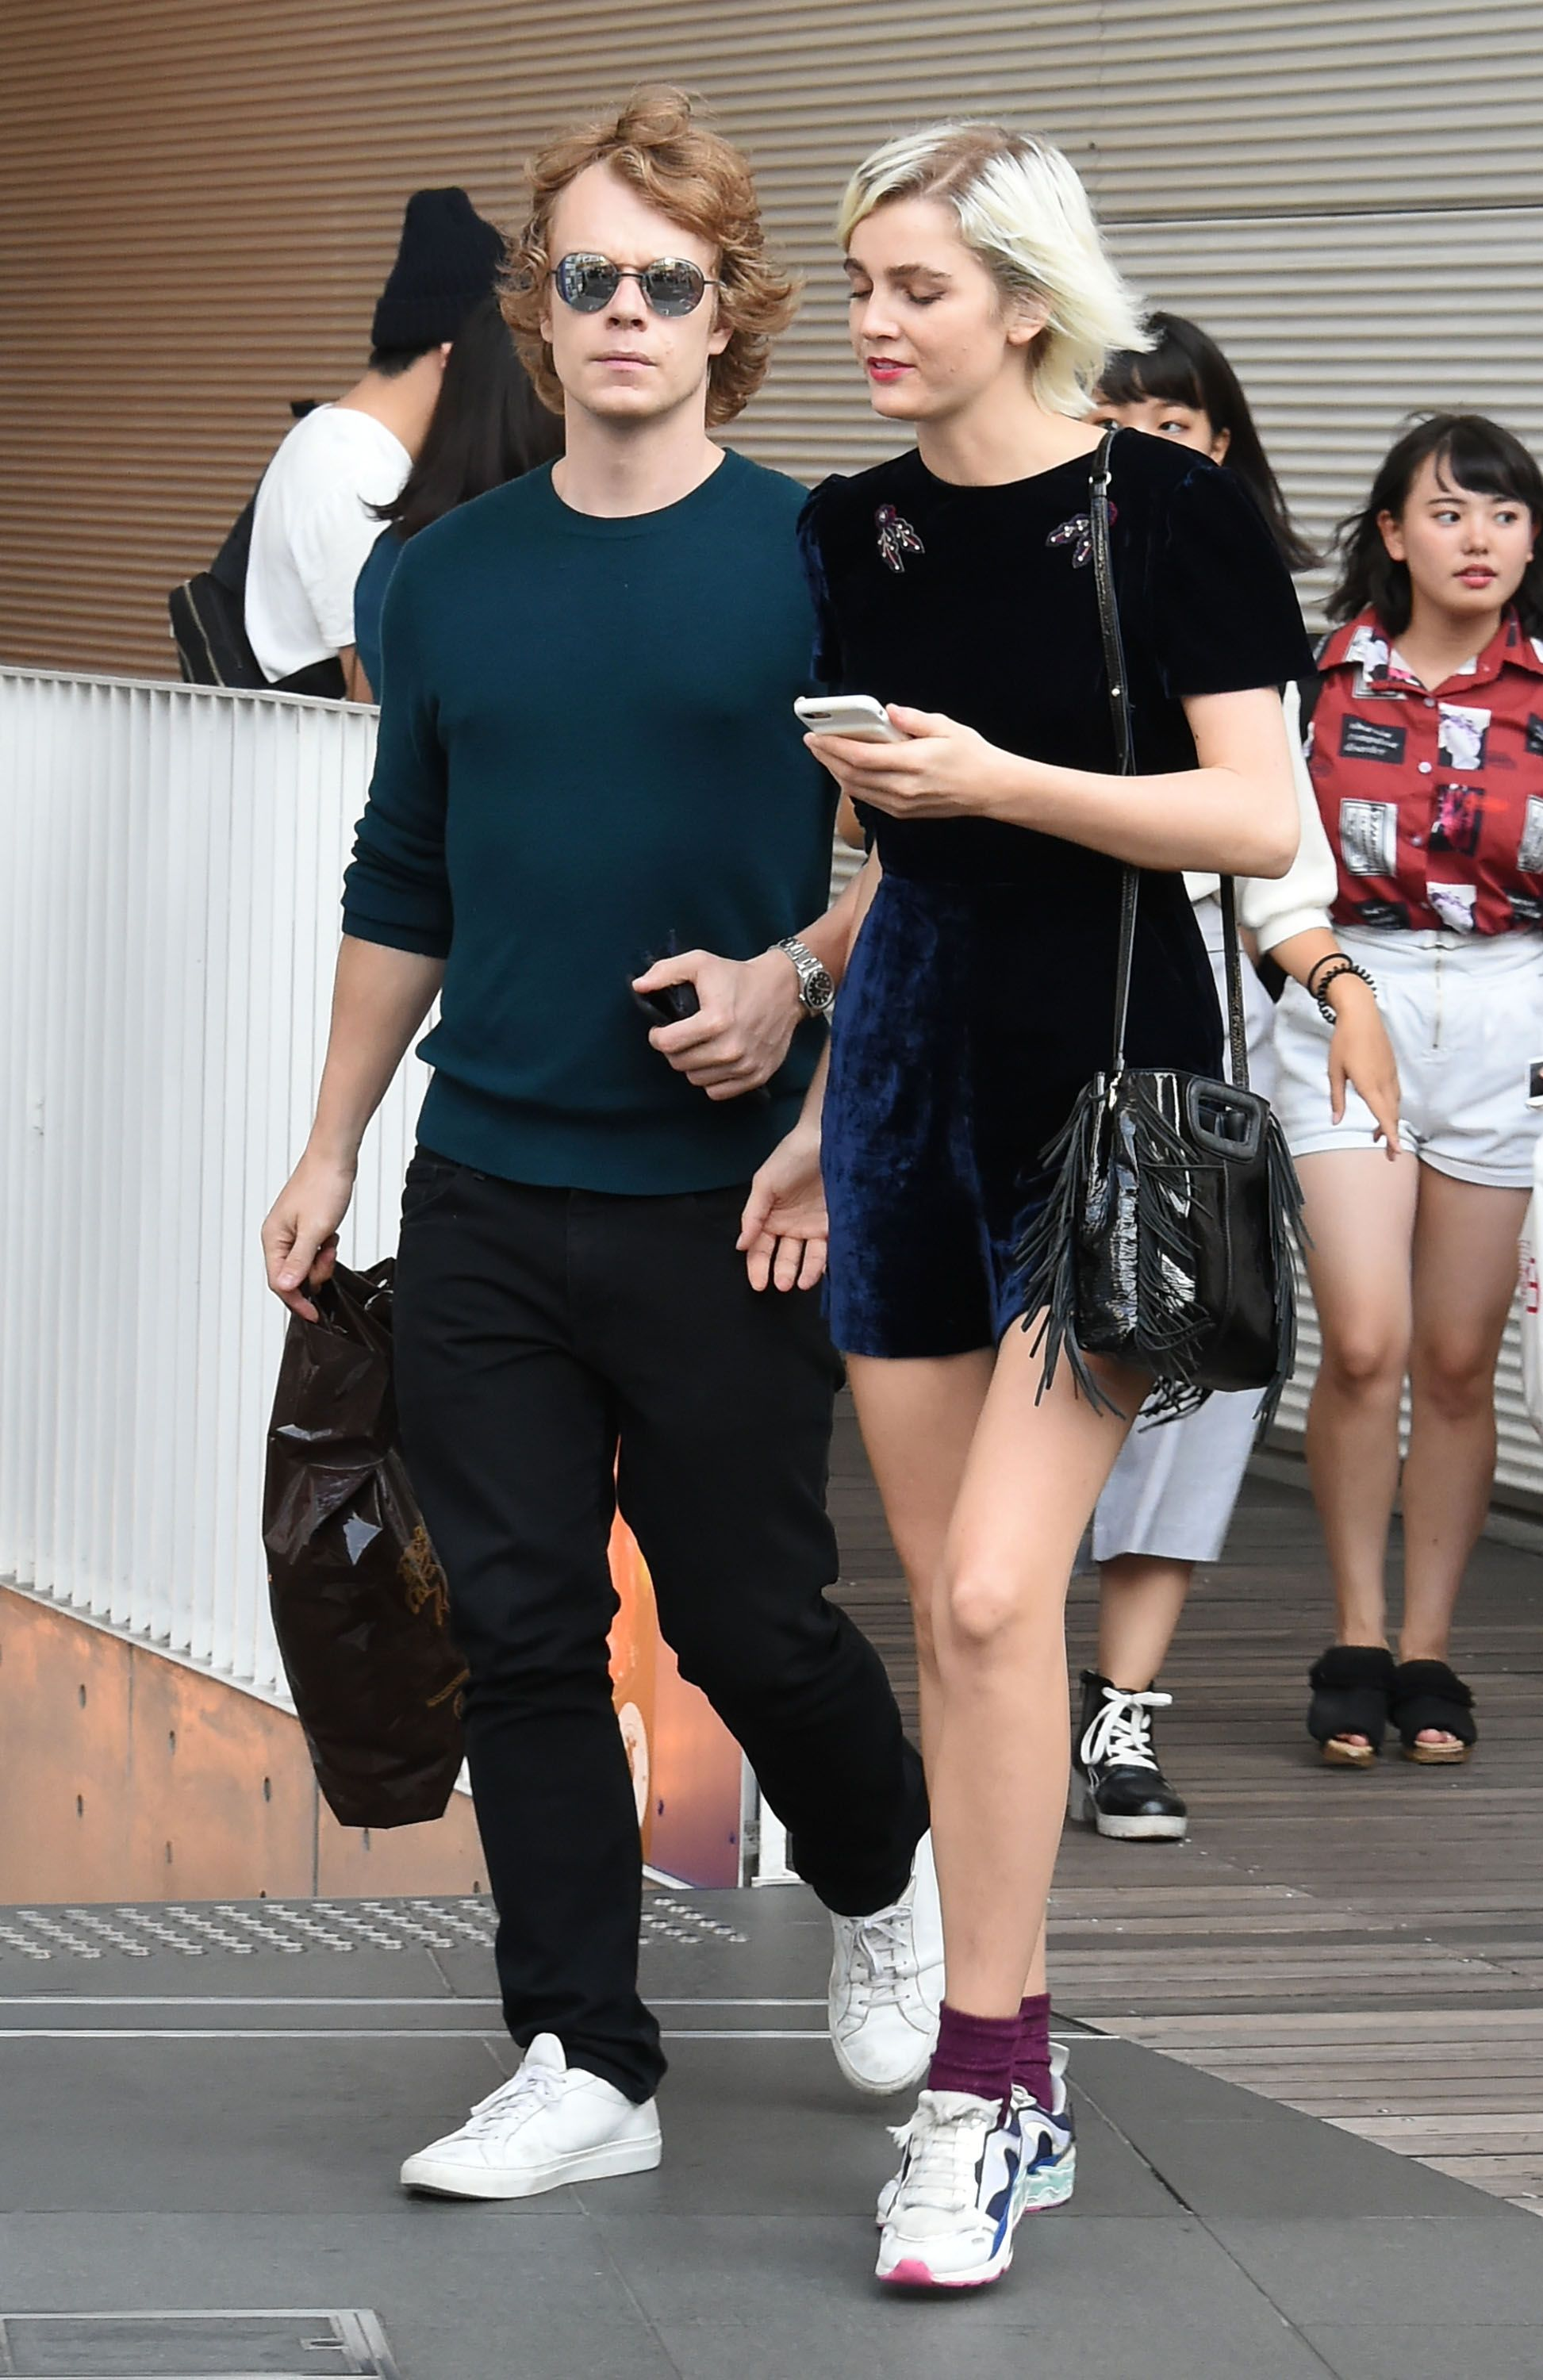 Alfie Allen (Theon Greyjoy) and Allie Teilz It's not clear exactly how long the couple have been together , but they've been making headlines since summer 2017.